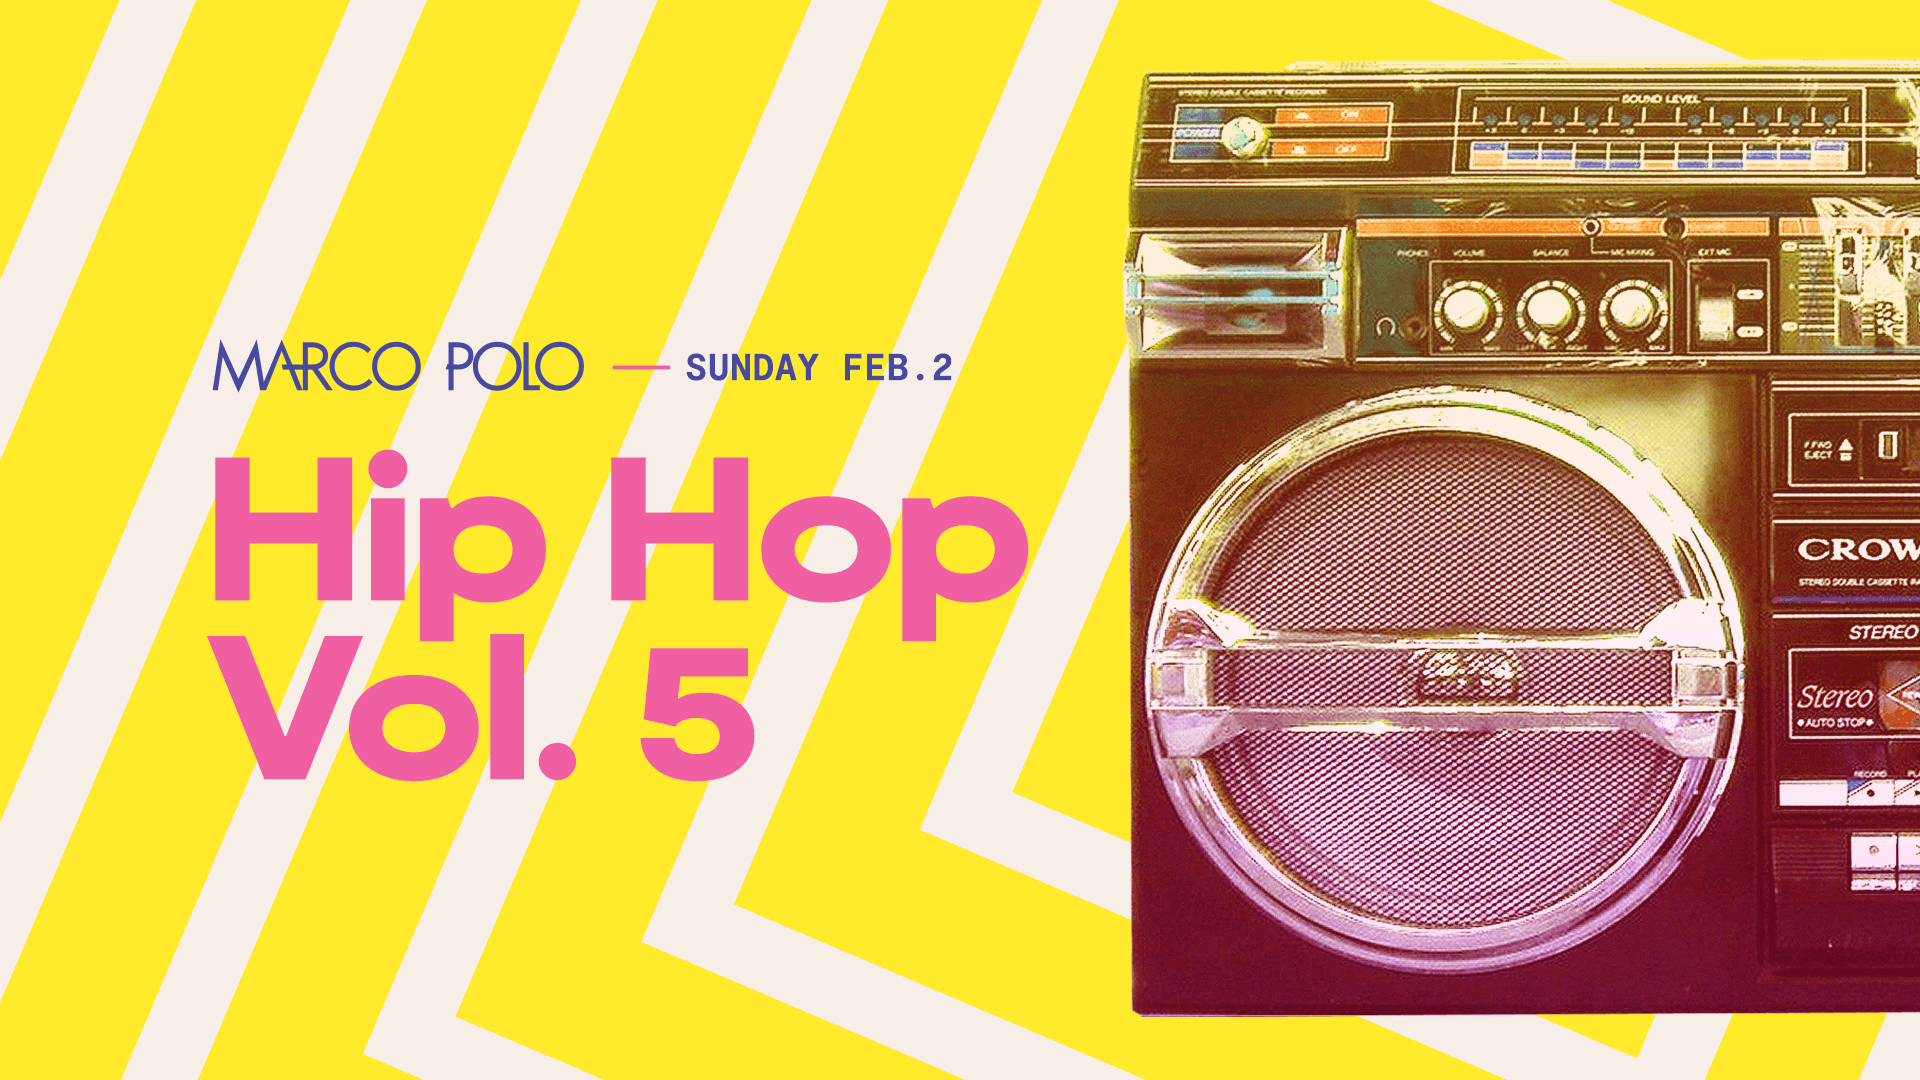 Tickets for Marco Polo | Hip Hop Vol. 5 in Sydney from Merivale